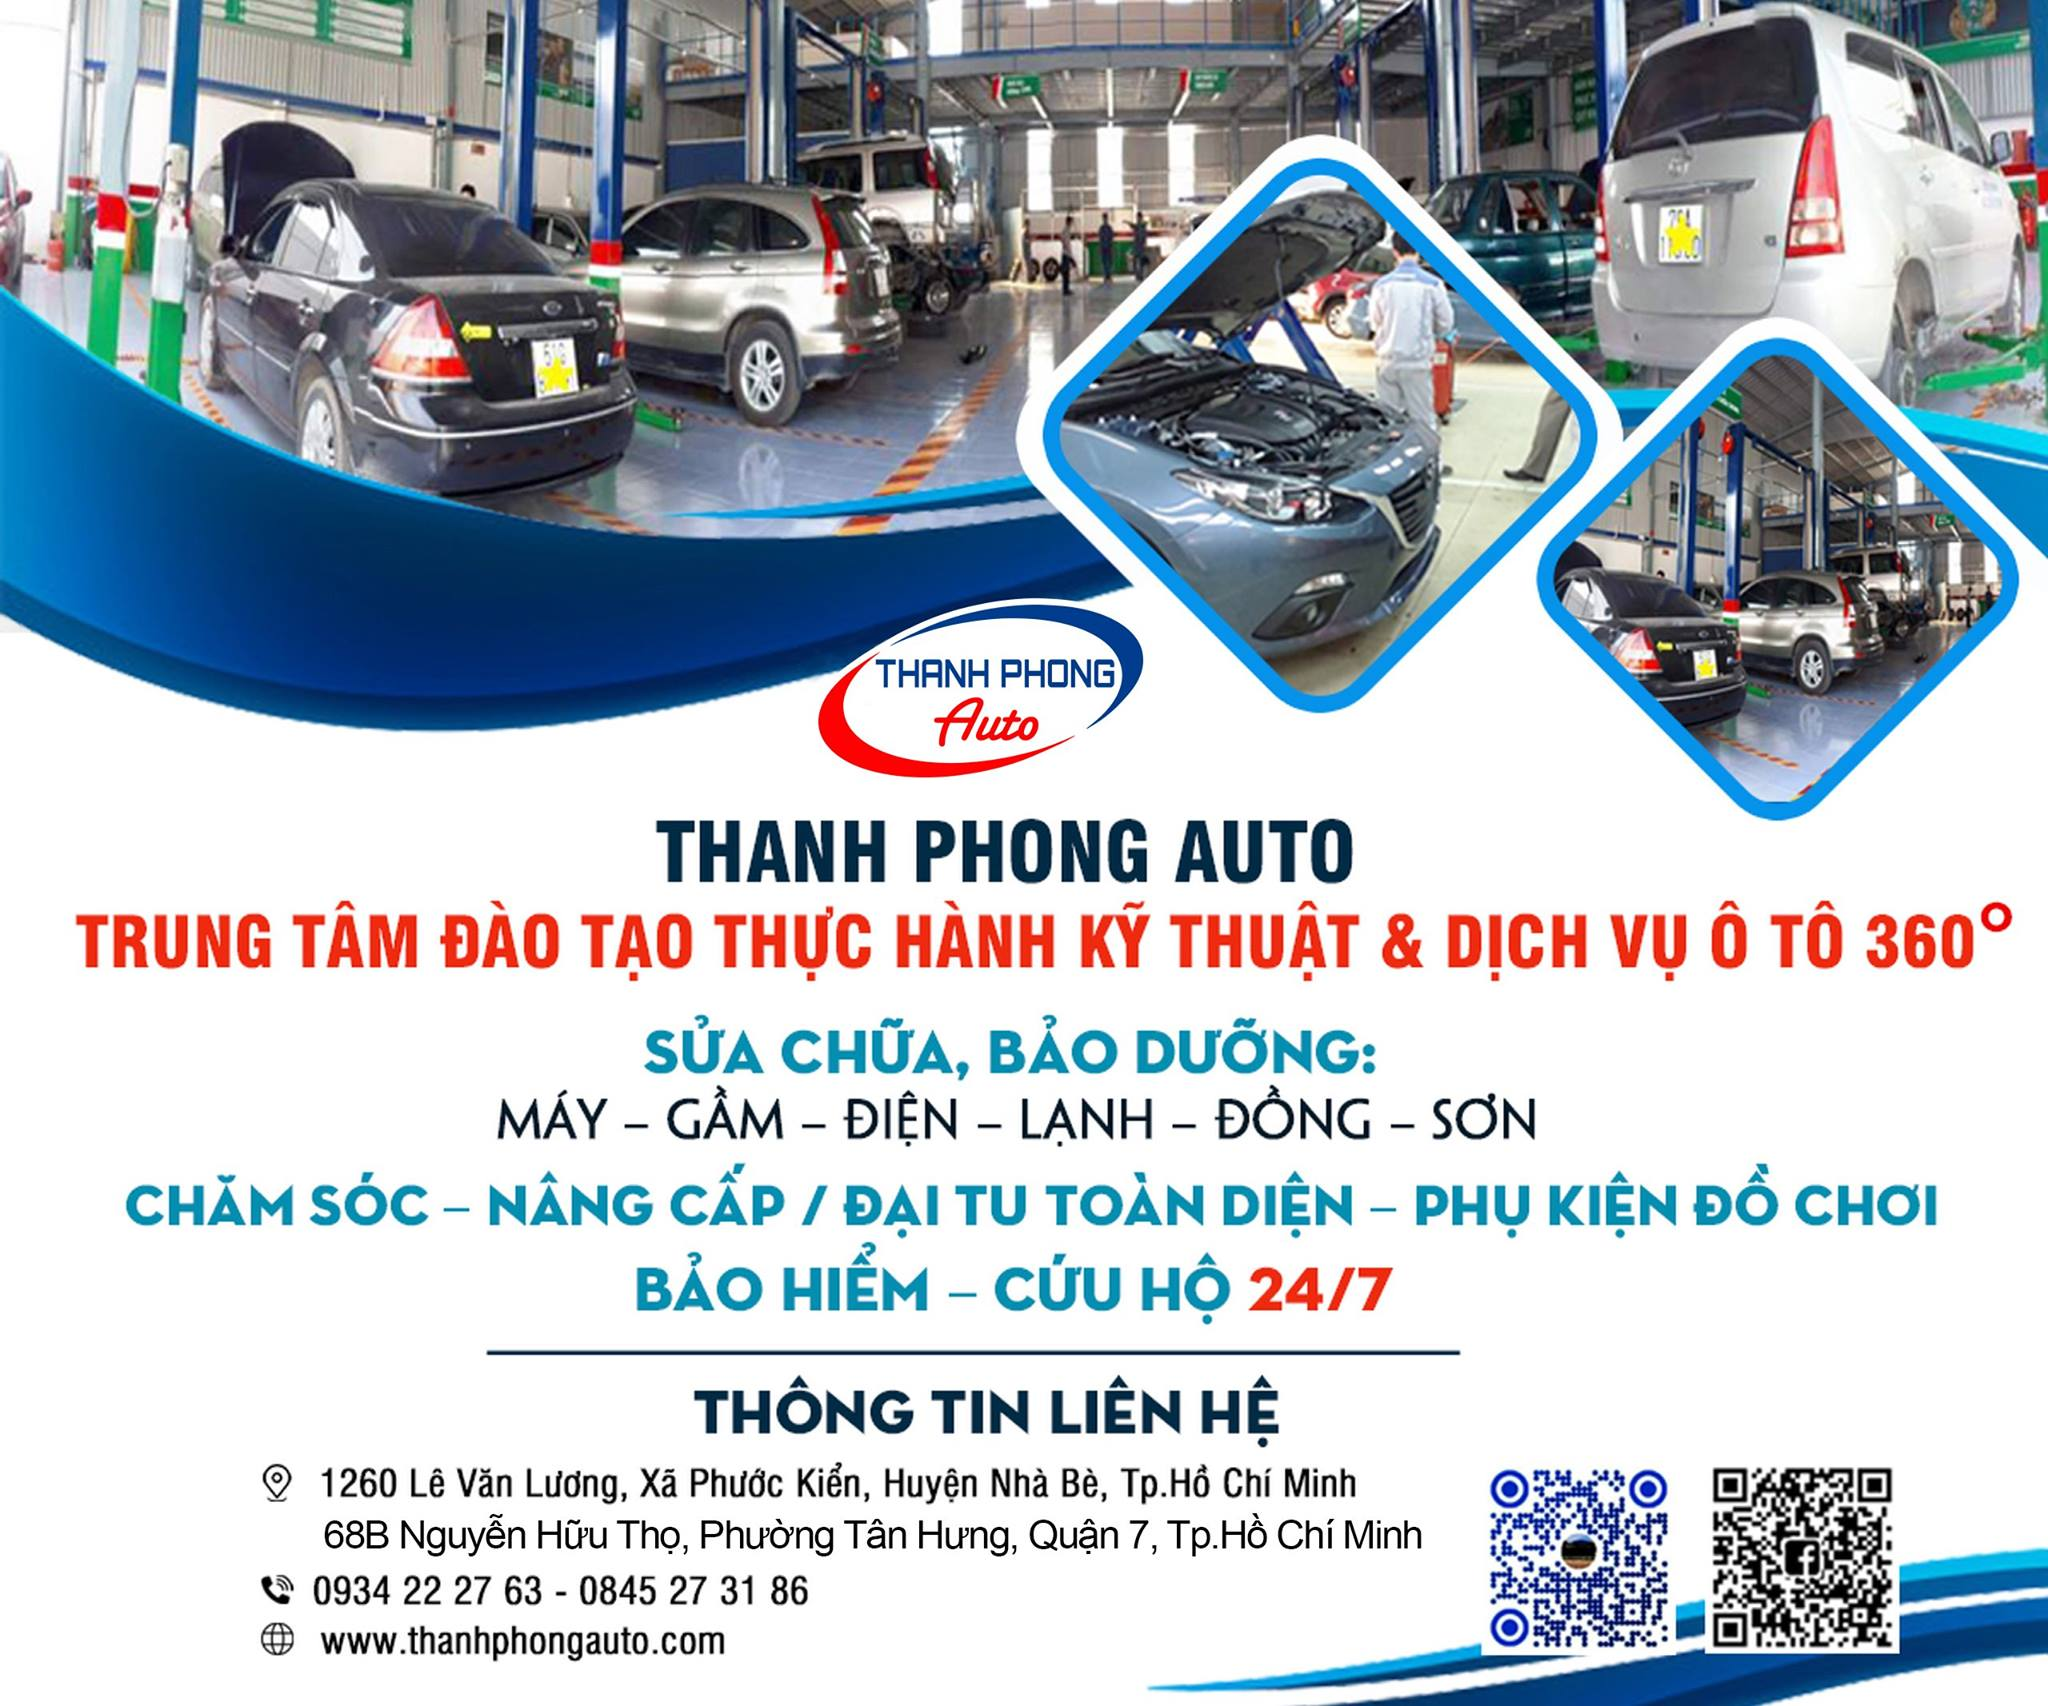 Top 12 Auto Repair and Maintenance Garages in District 6 2 Thanh Phong Auto HCM